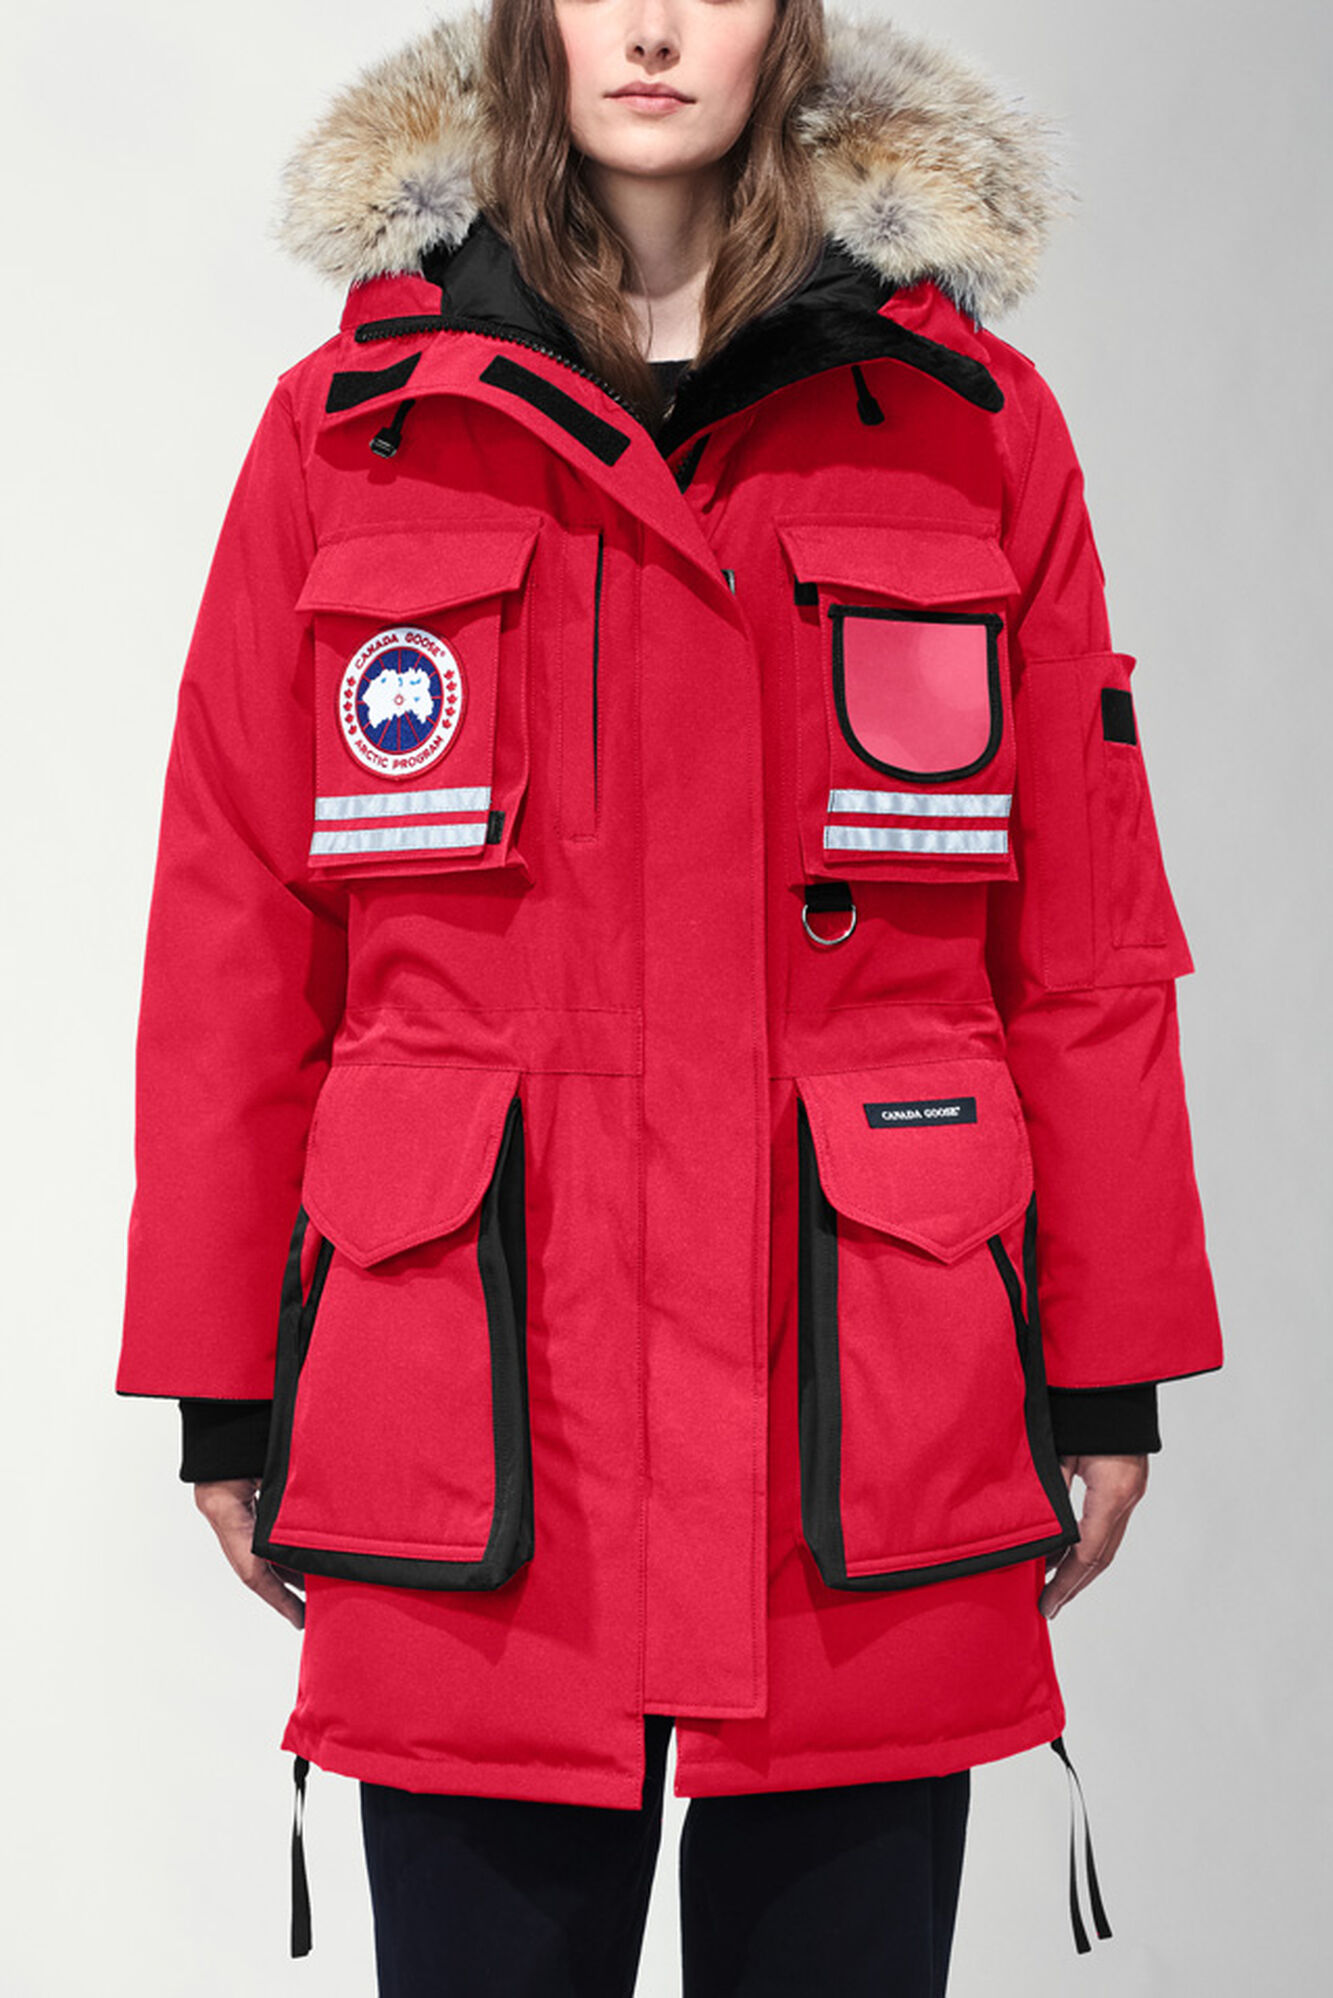 Canada Goose trillium parka replica fake - Women's Arctic Program Expedition Parka | Canada Goose?